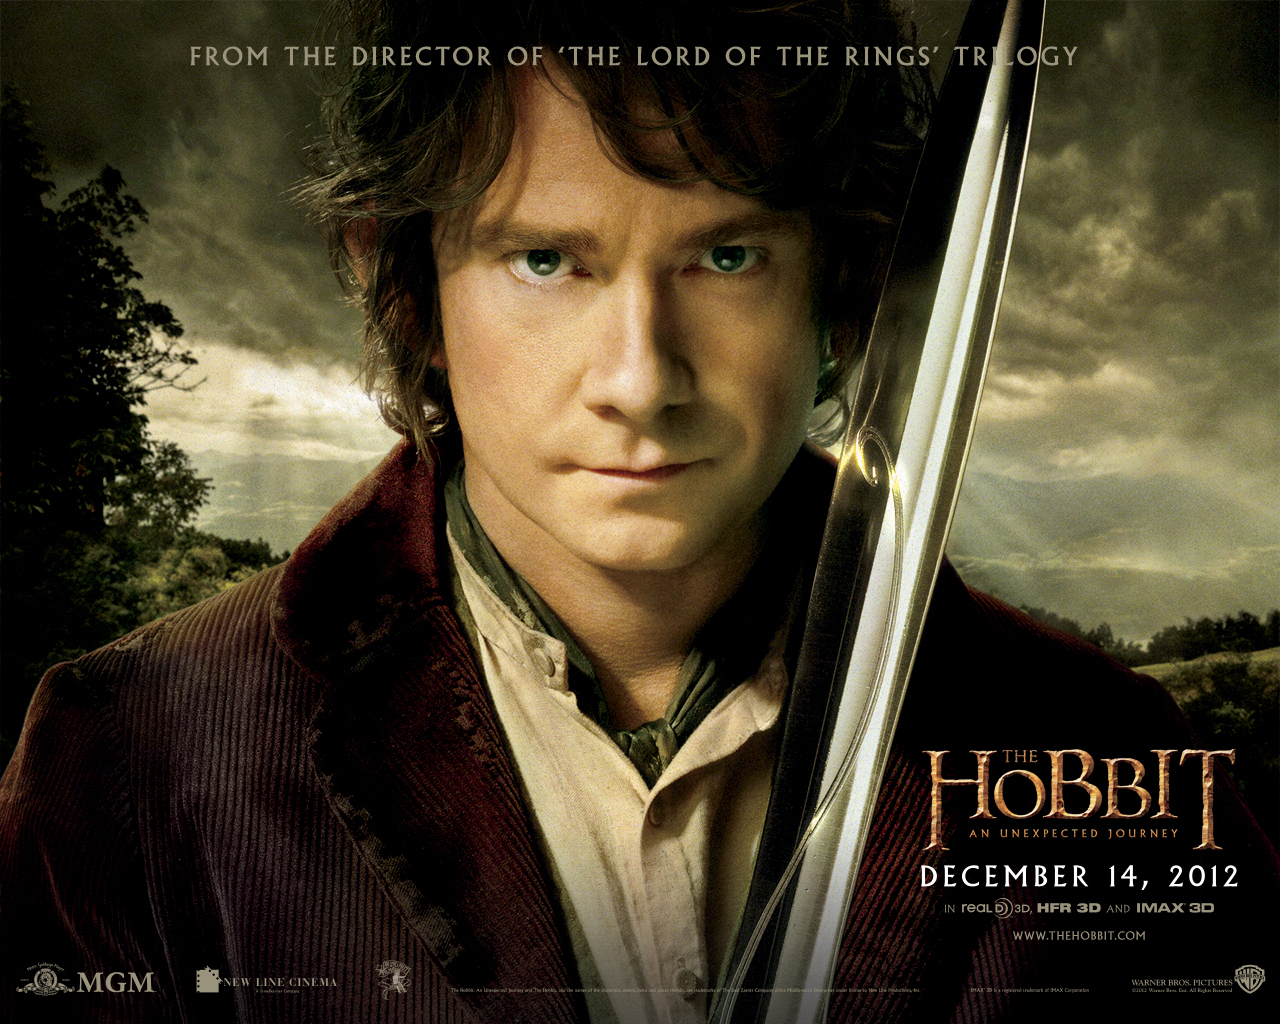 downloads wallpaper der hobbit wallpaper pack der hobbit wallpaper 1280x1024